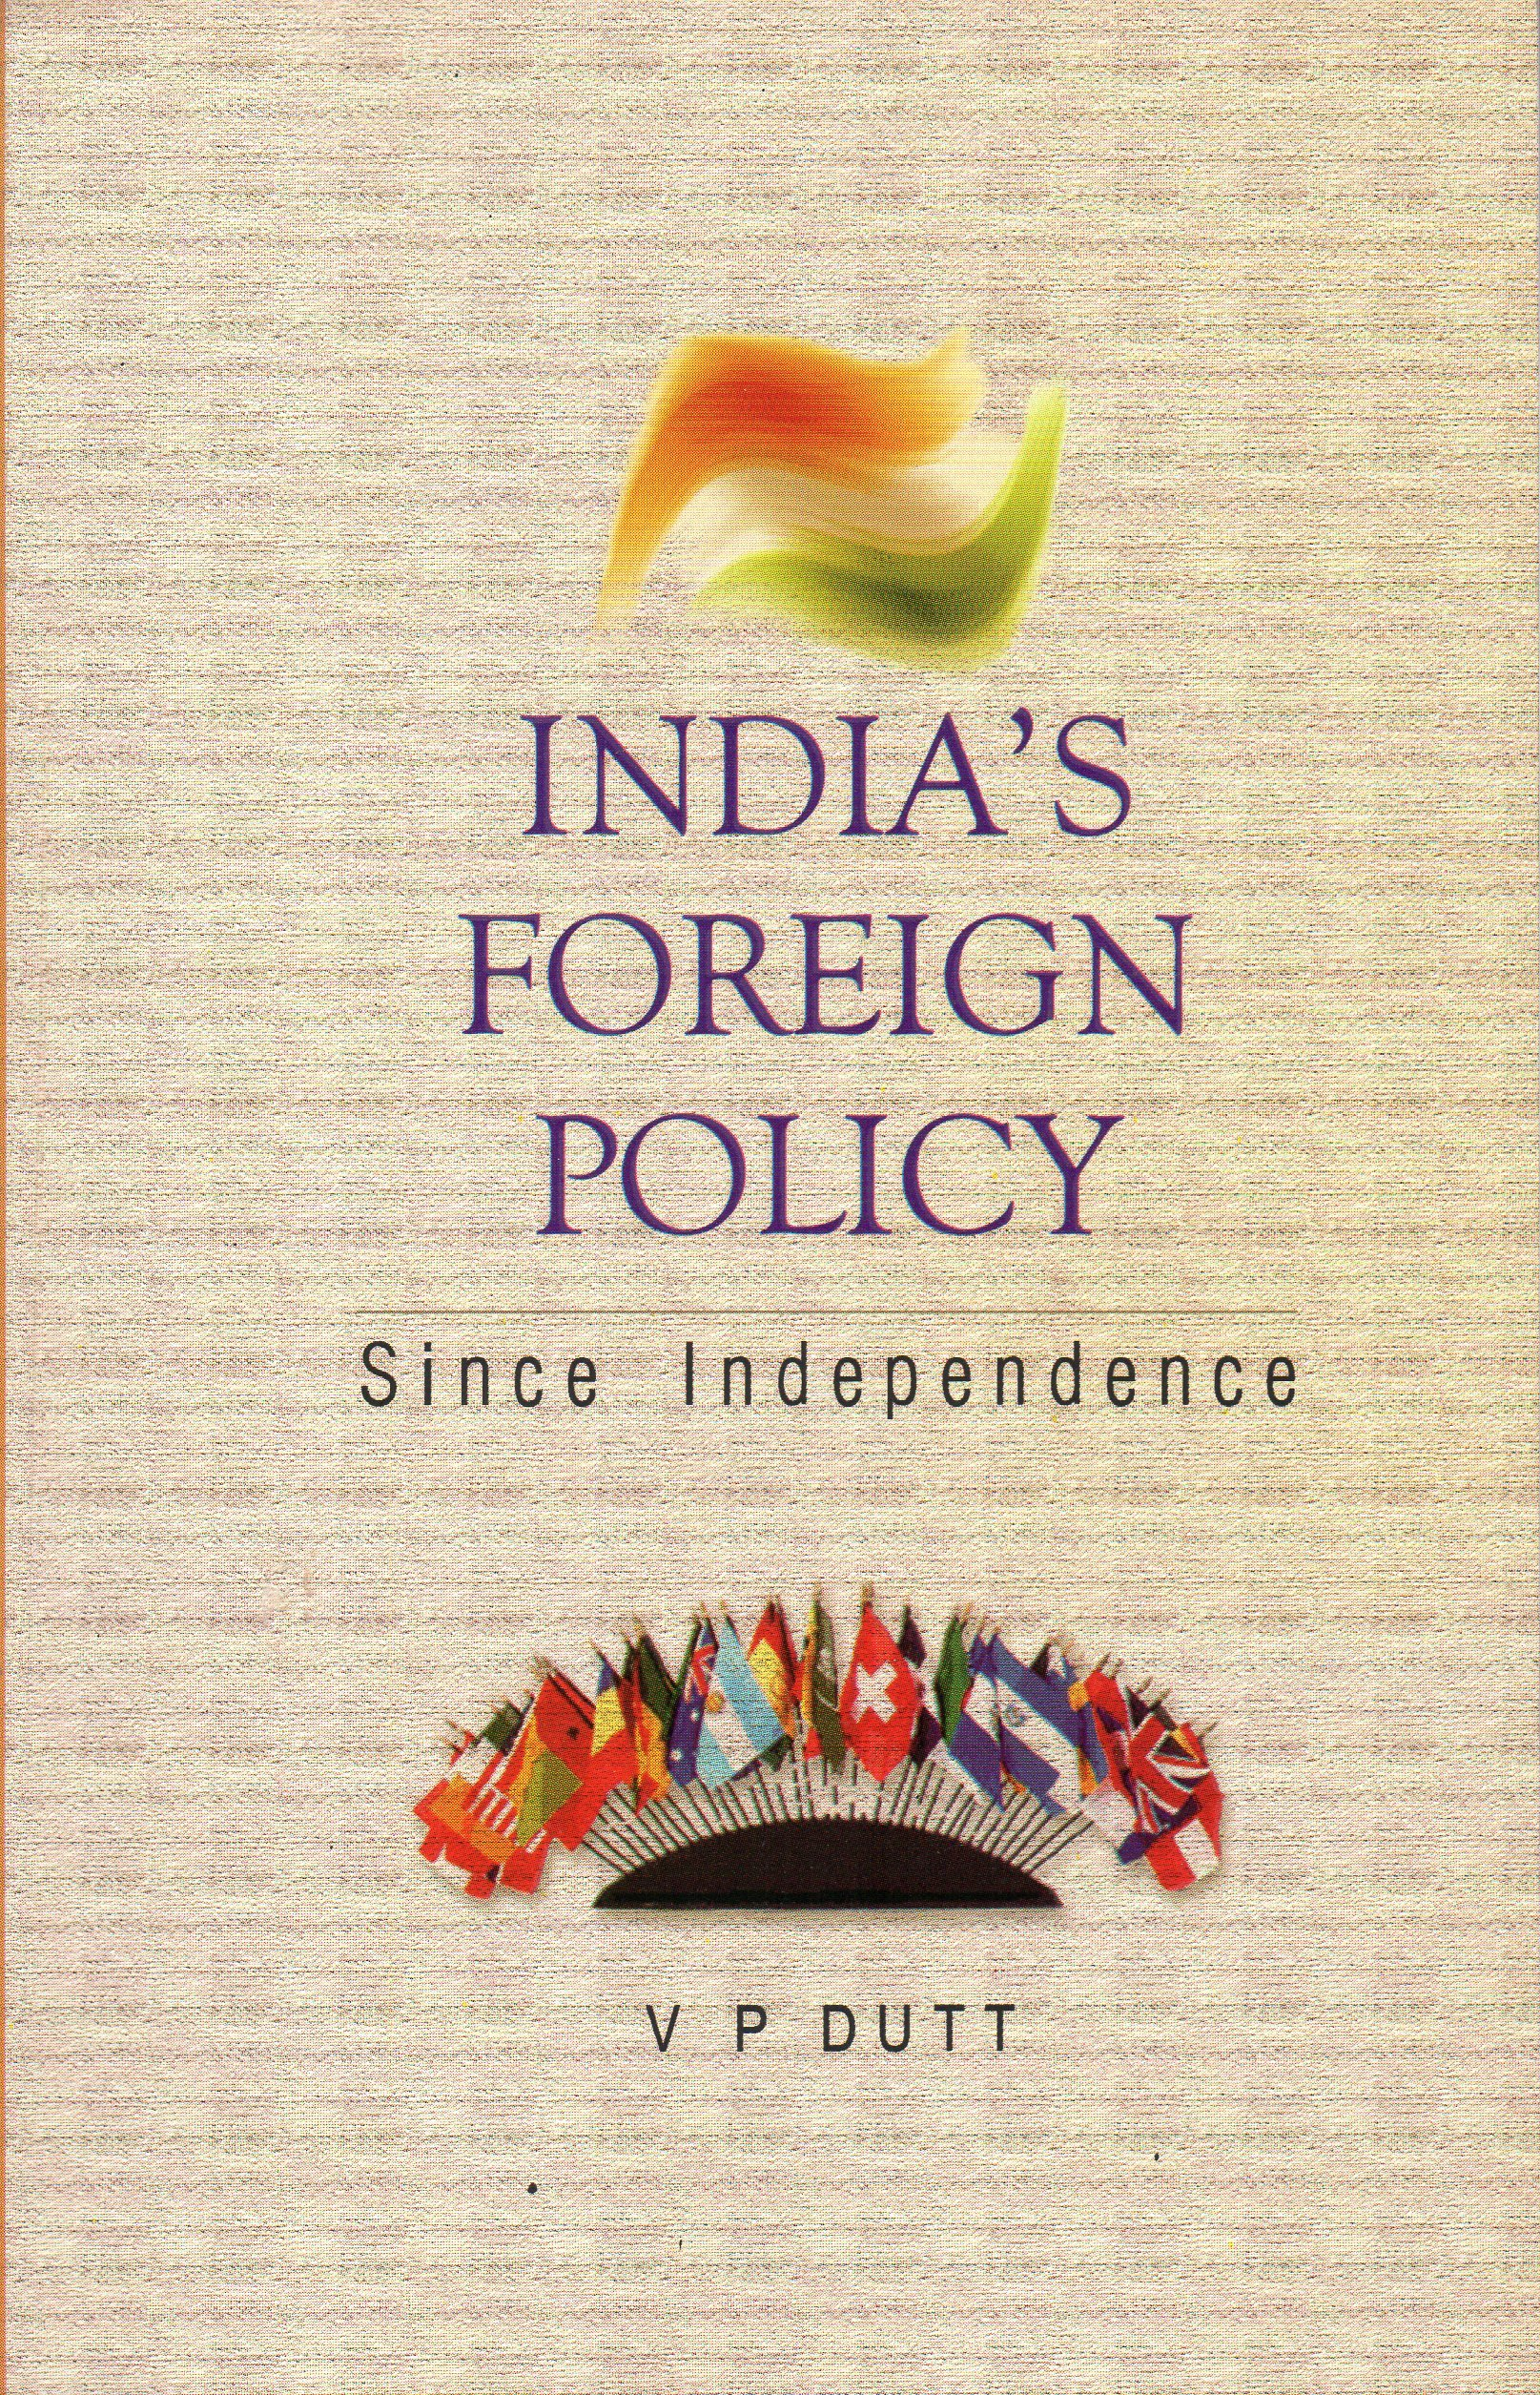 India's Foreign Policy Since Indepence